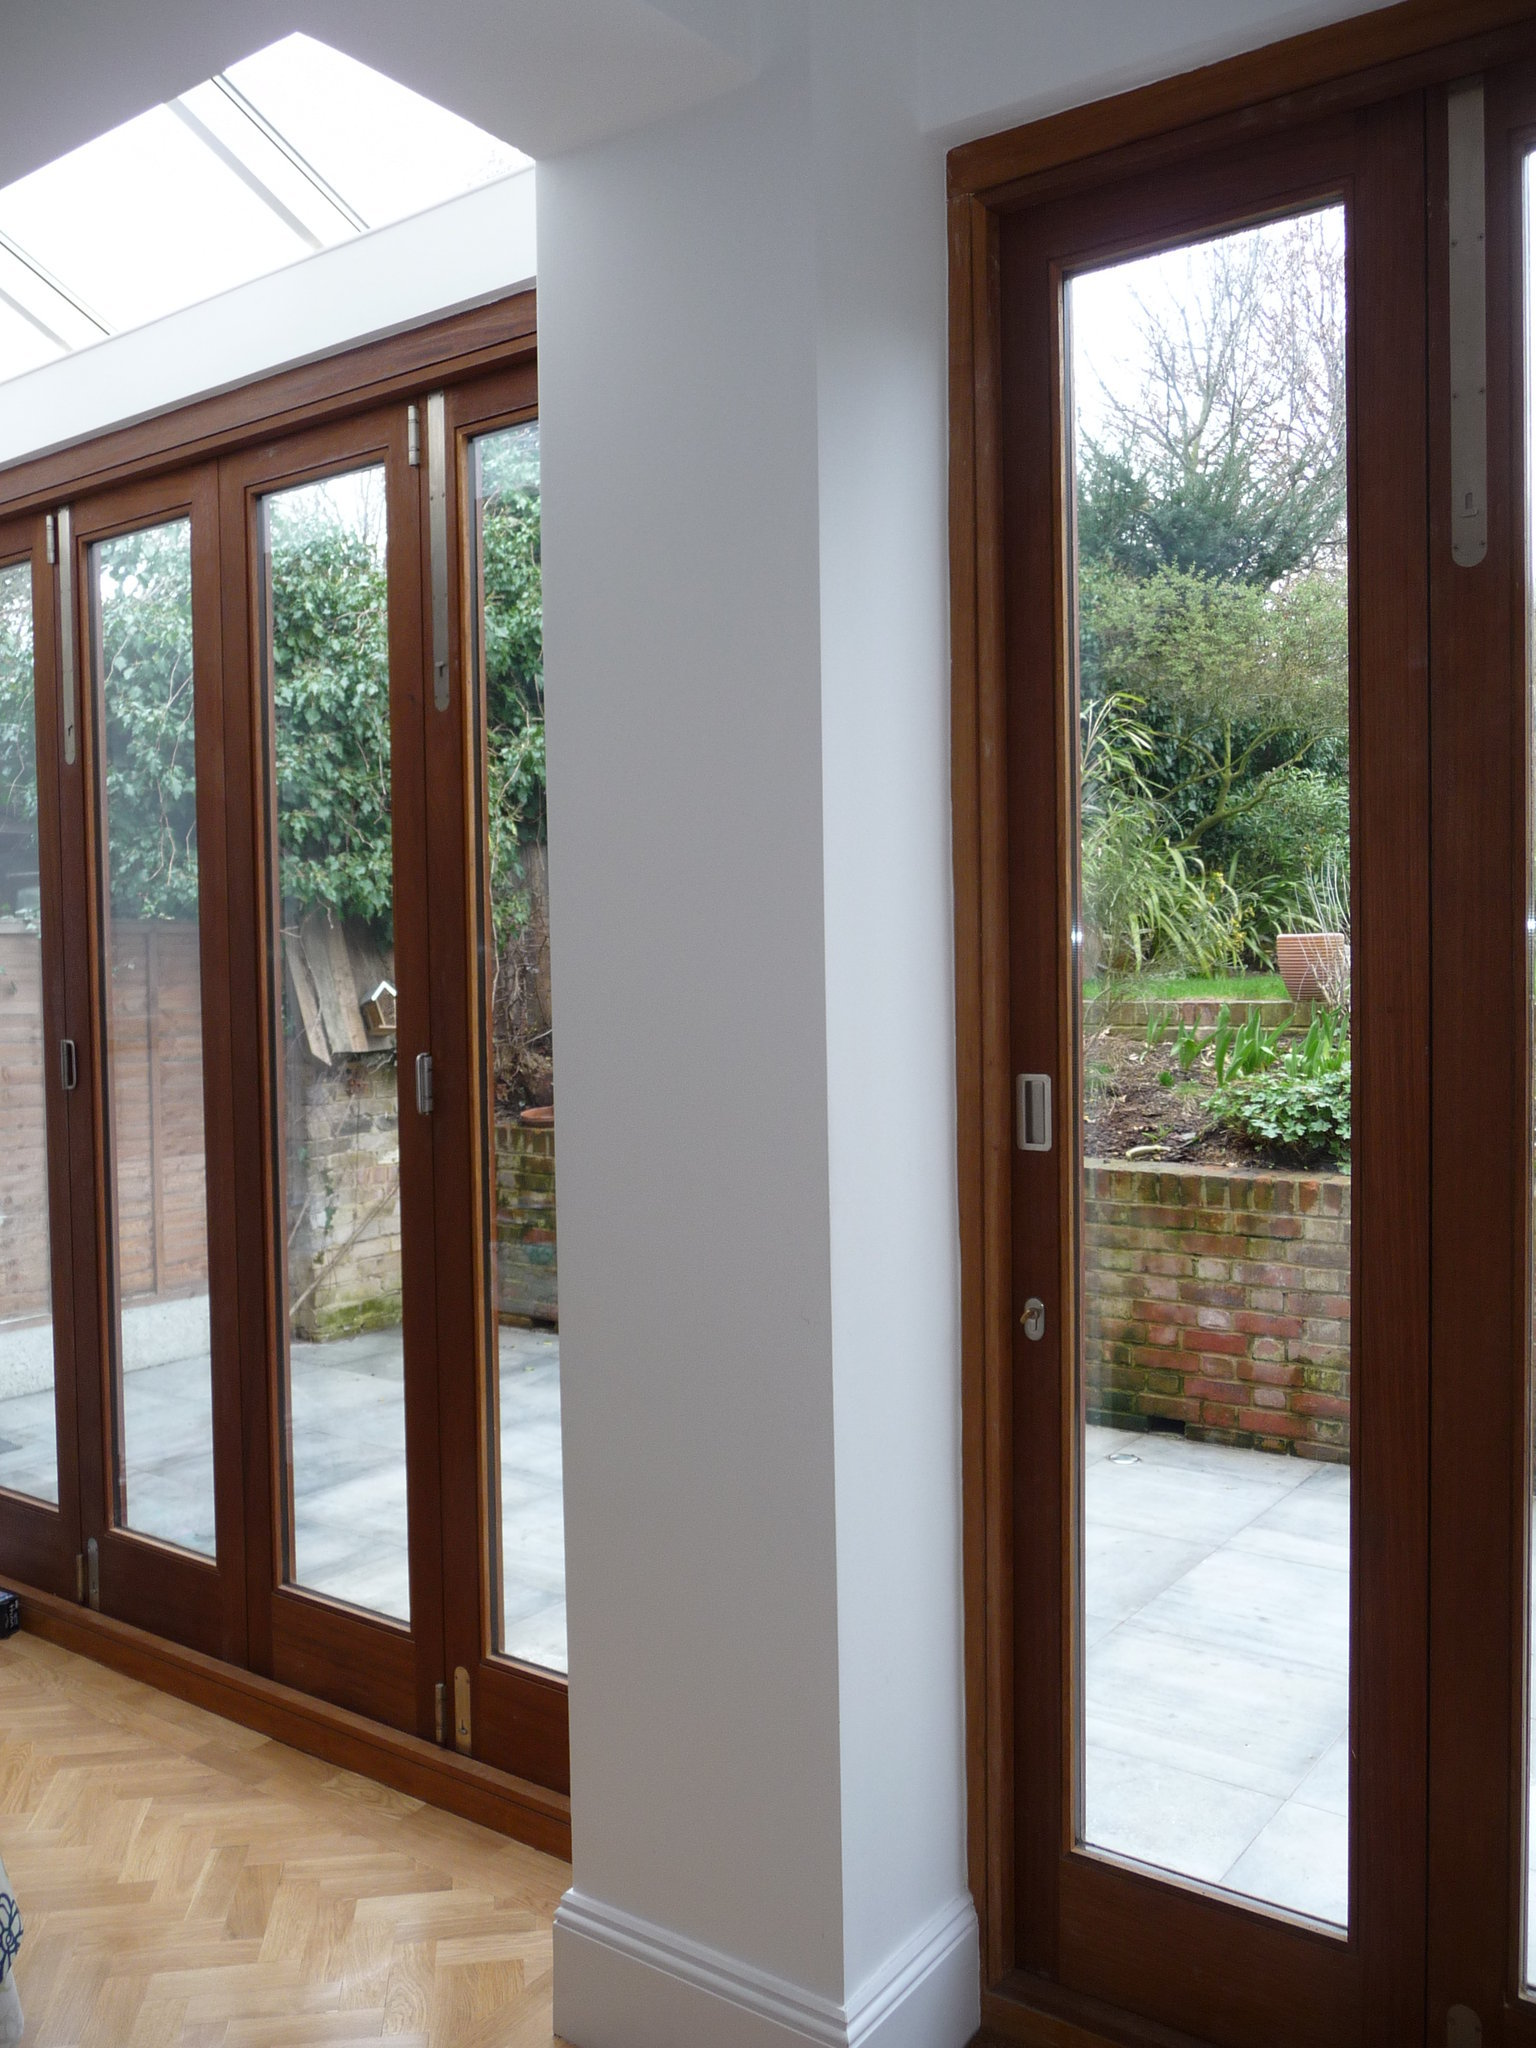 Sliding folding doors - Lewisham (1).JPG